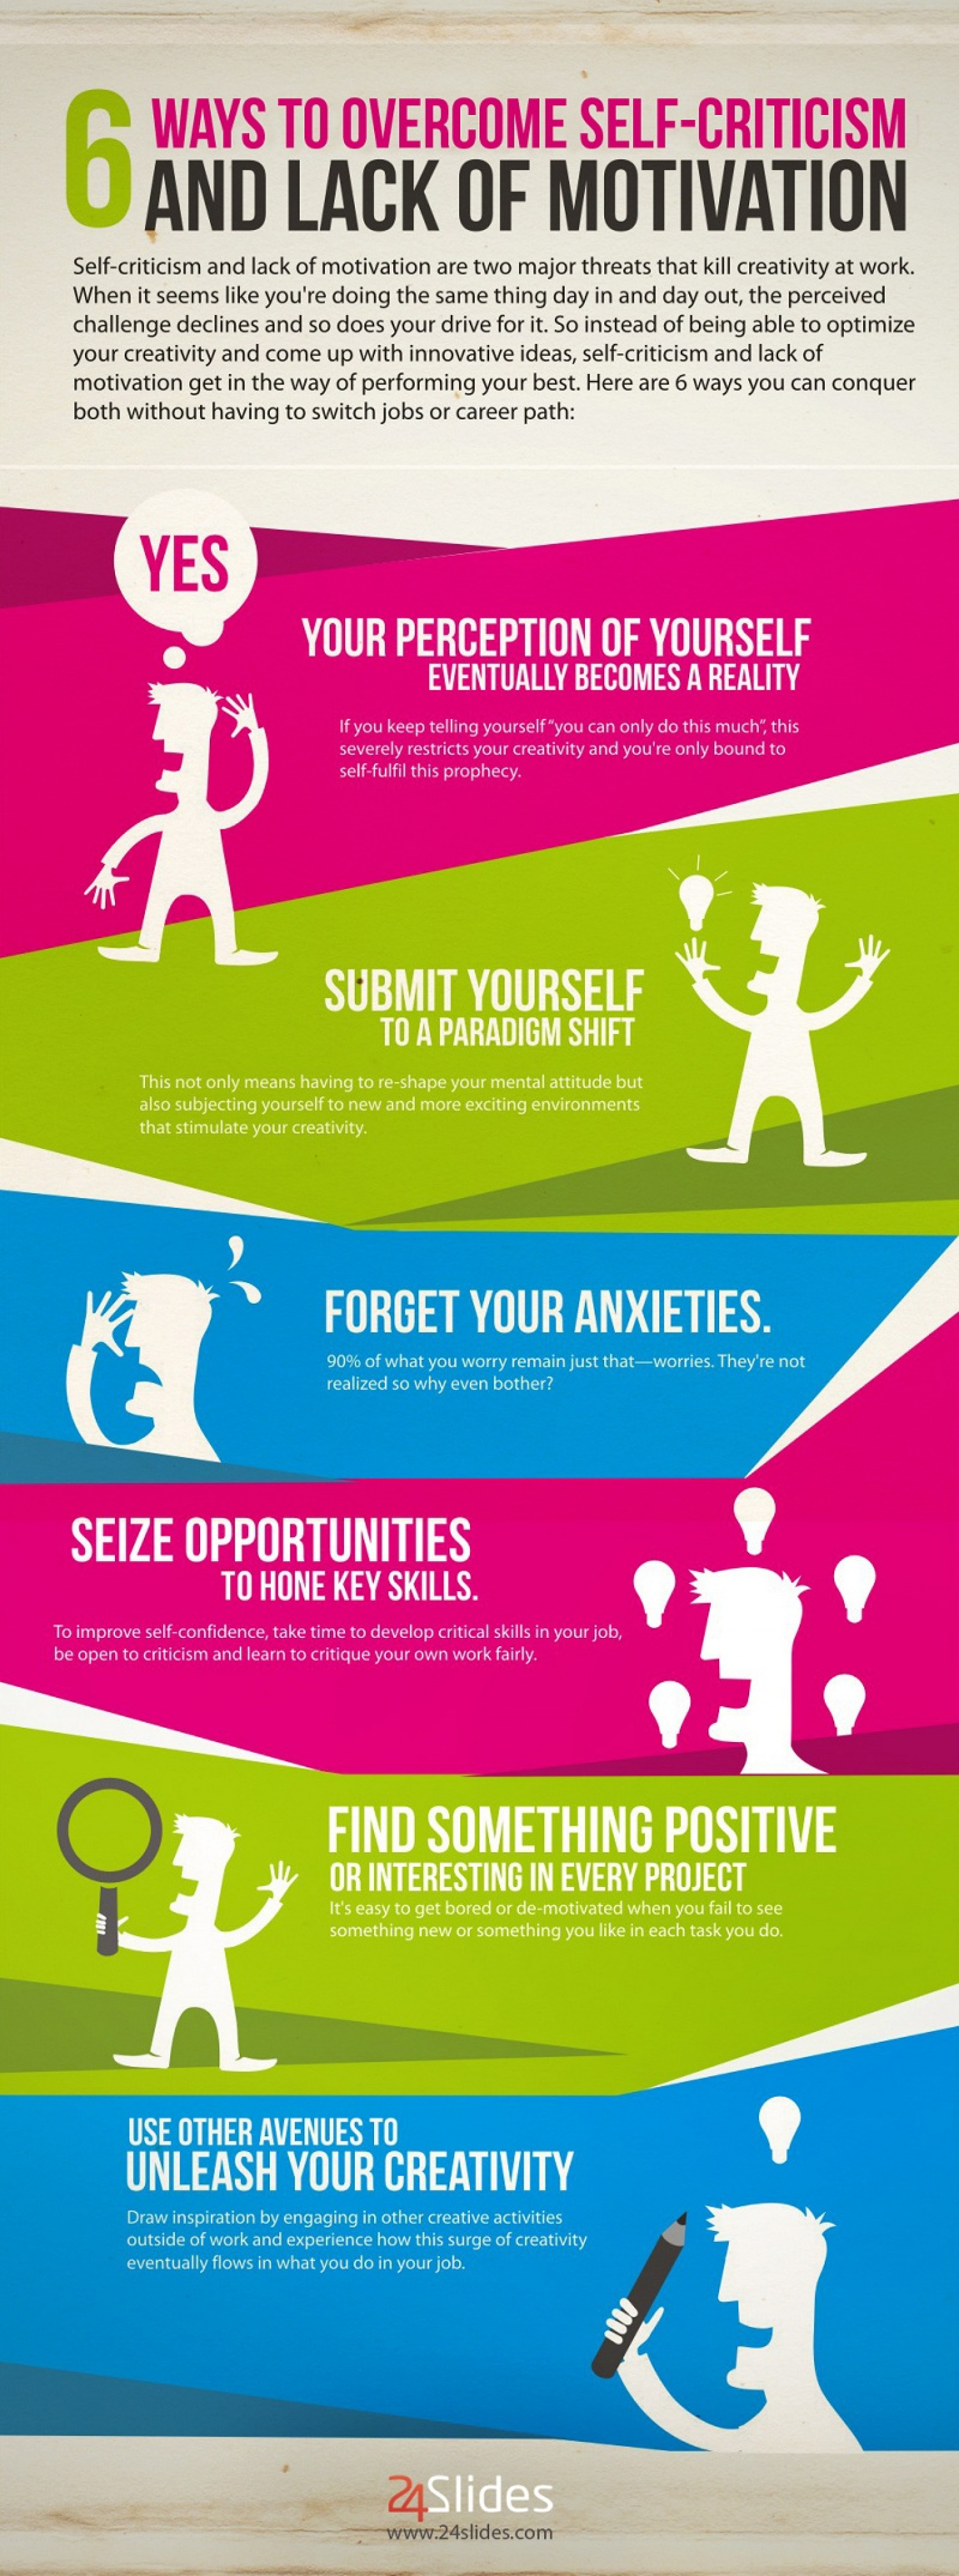 6 Ways to Conquer Self-Criticism and Lack of Motivation Infographic